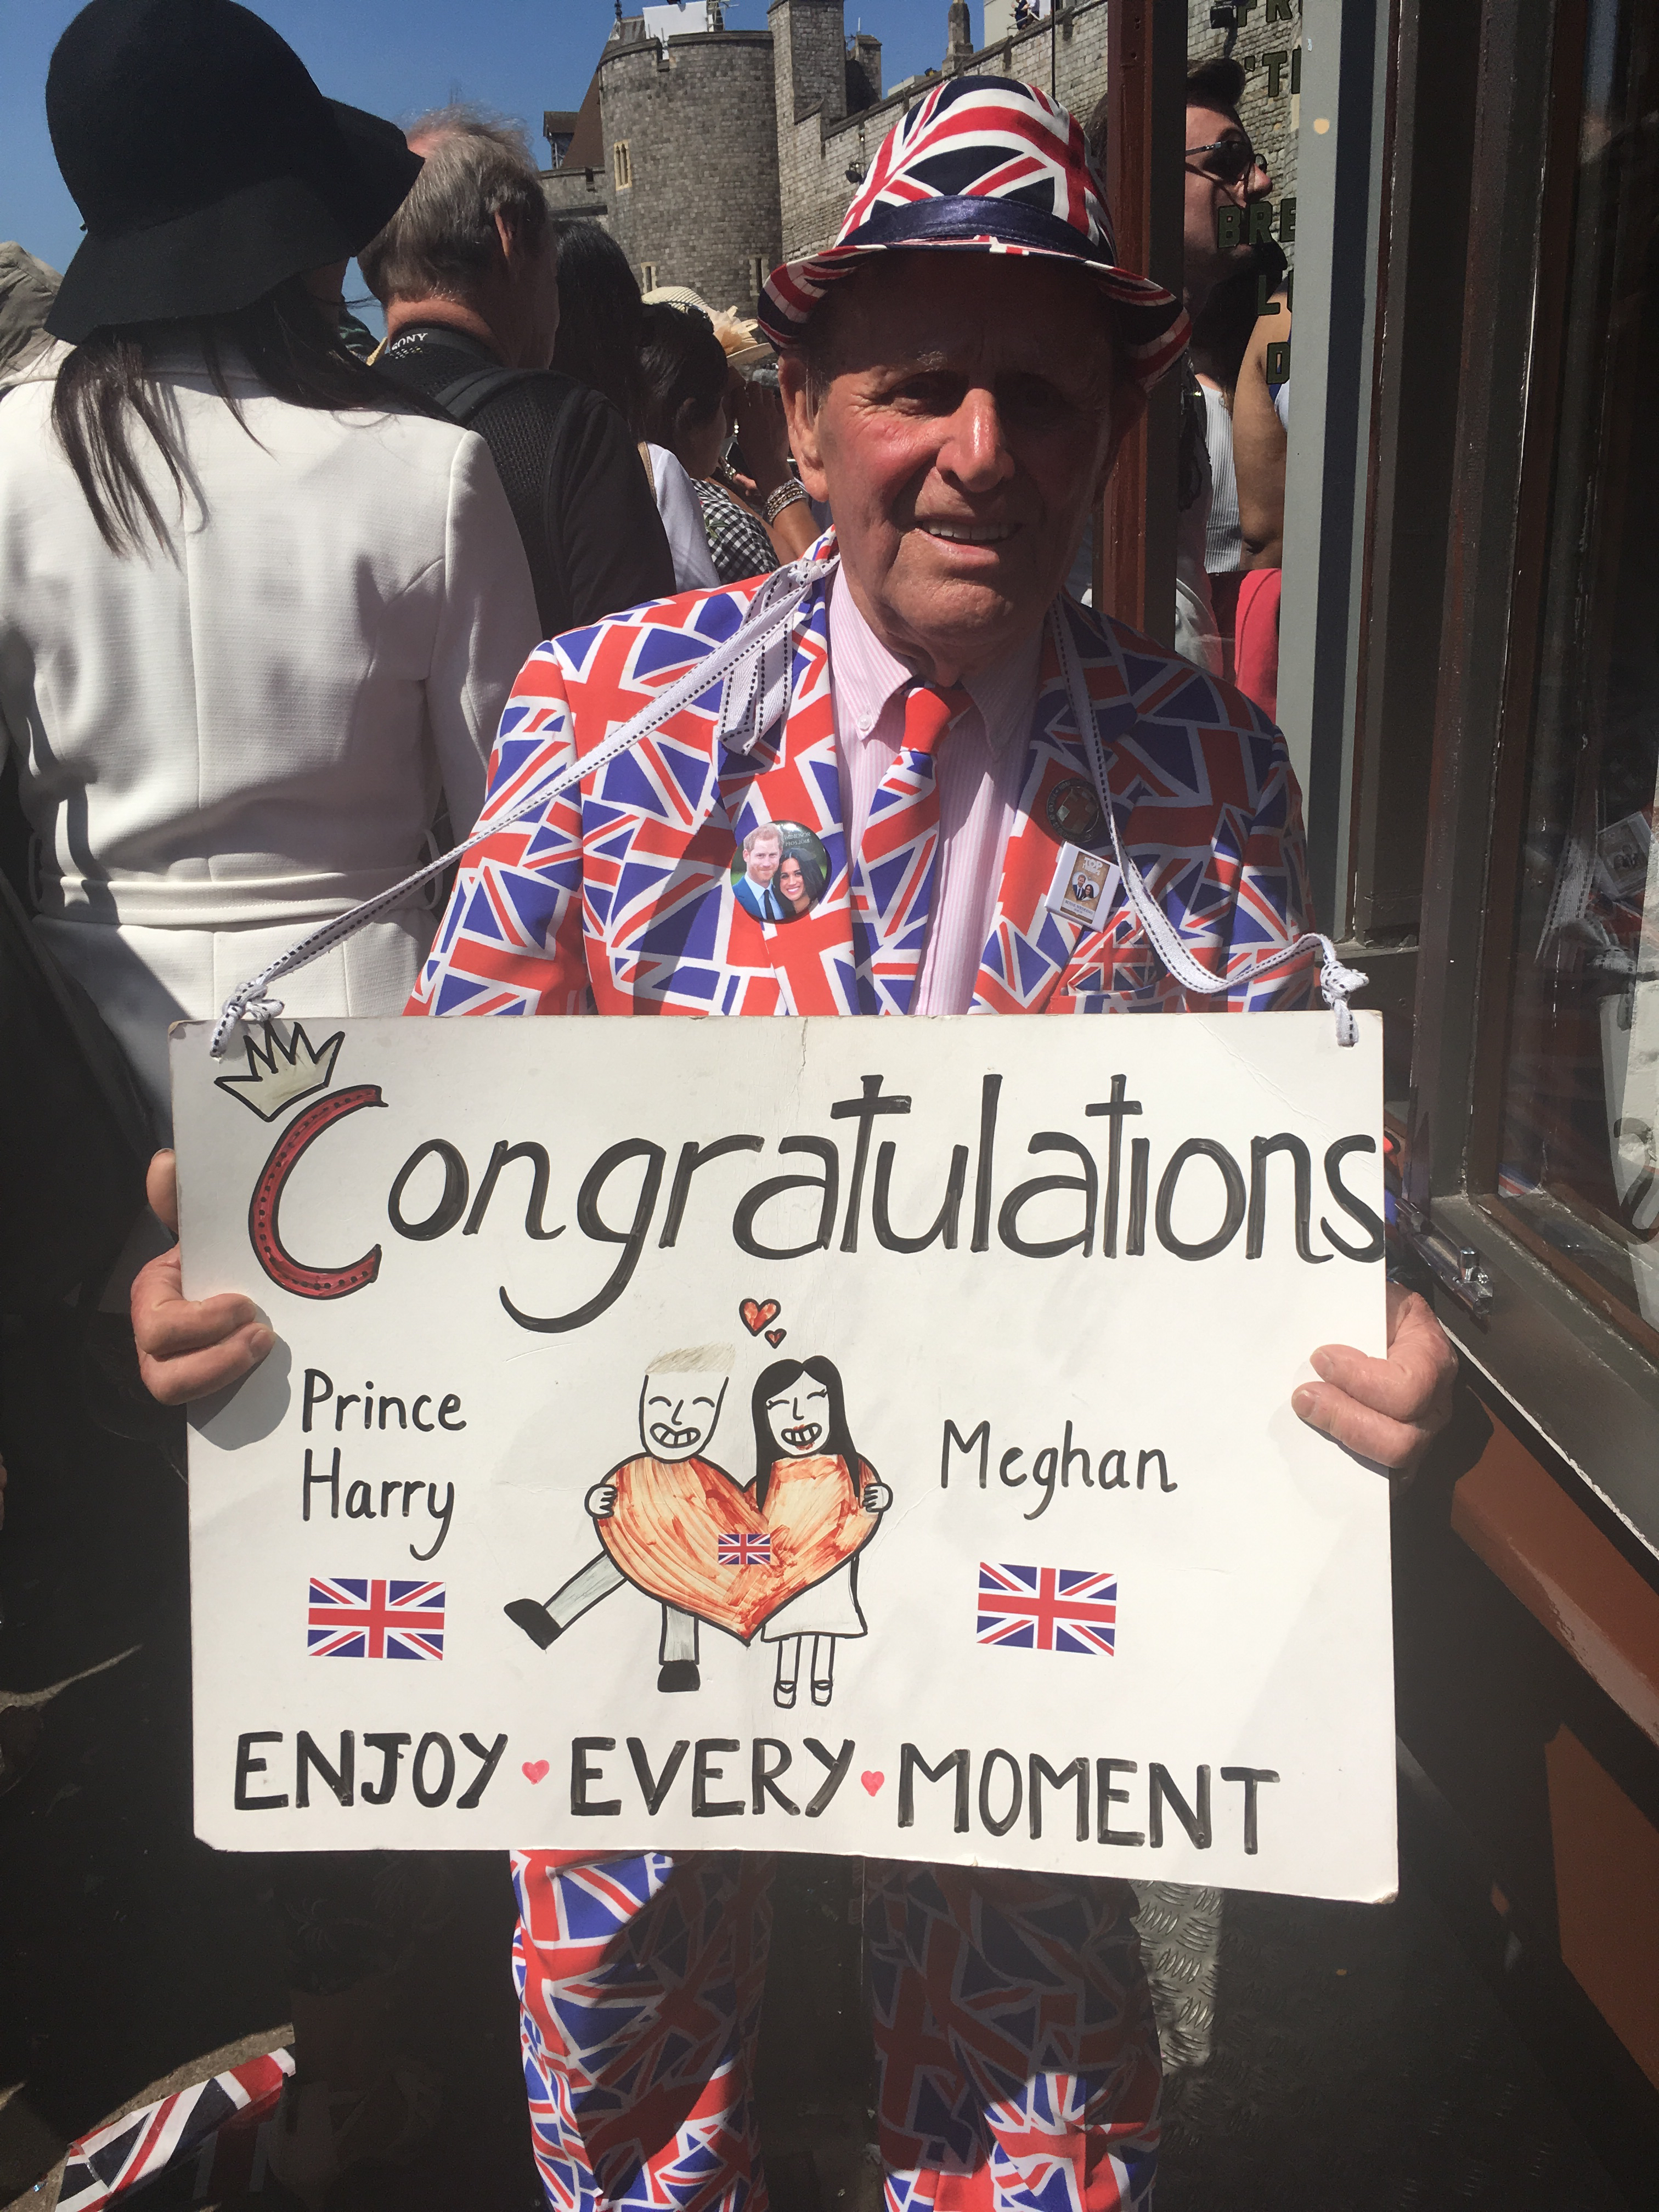 Long-term royal fan Terry Hutt, 83, in Windsor following the wedding of Prince Harry and Meghan Markle, on May 19 2018.